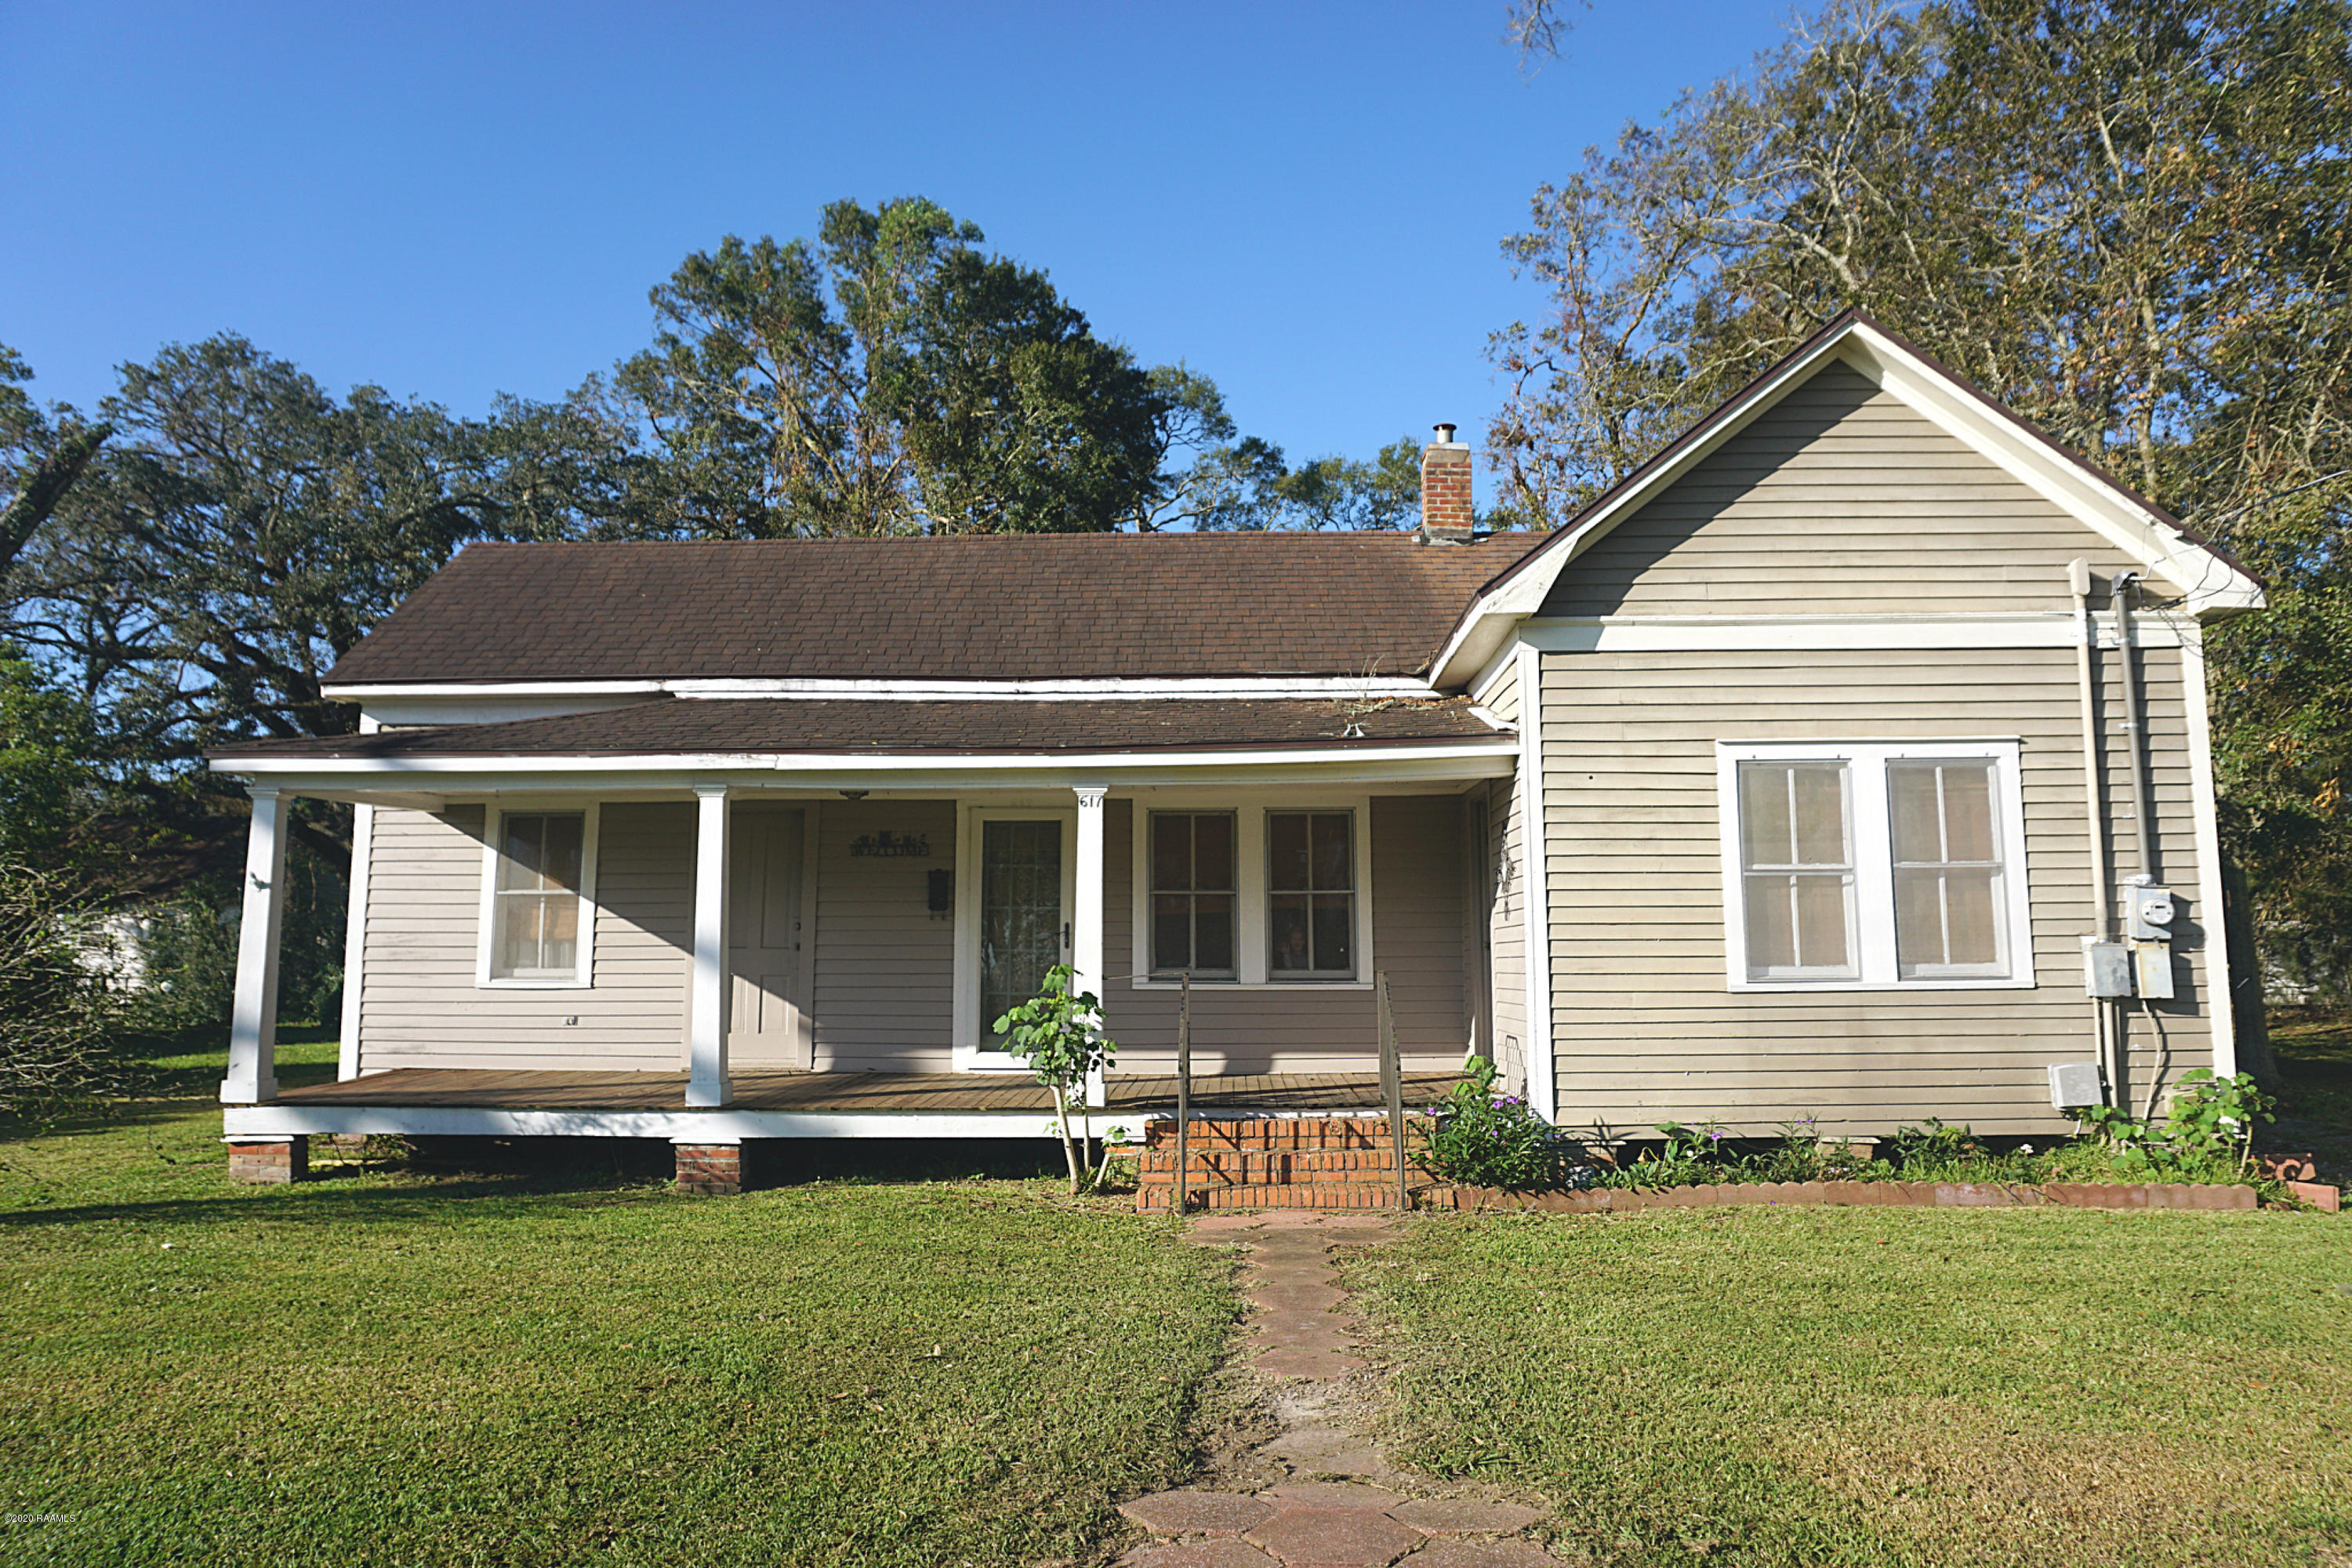 617 Avenue F N, Crowley, LA 70526 Photo #2